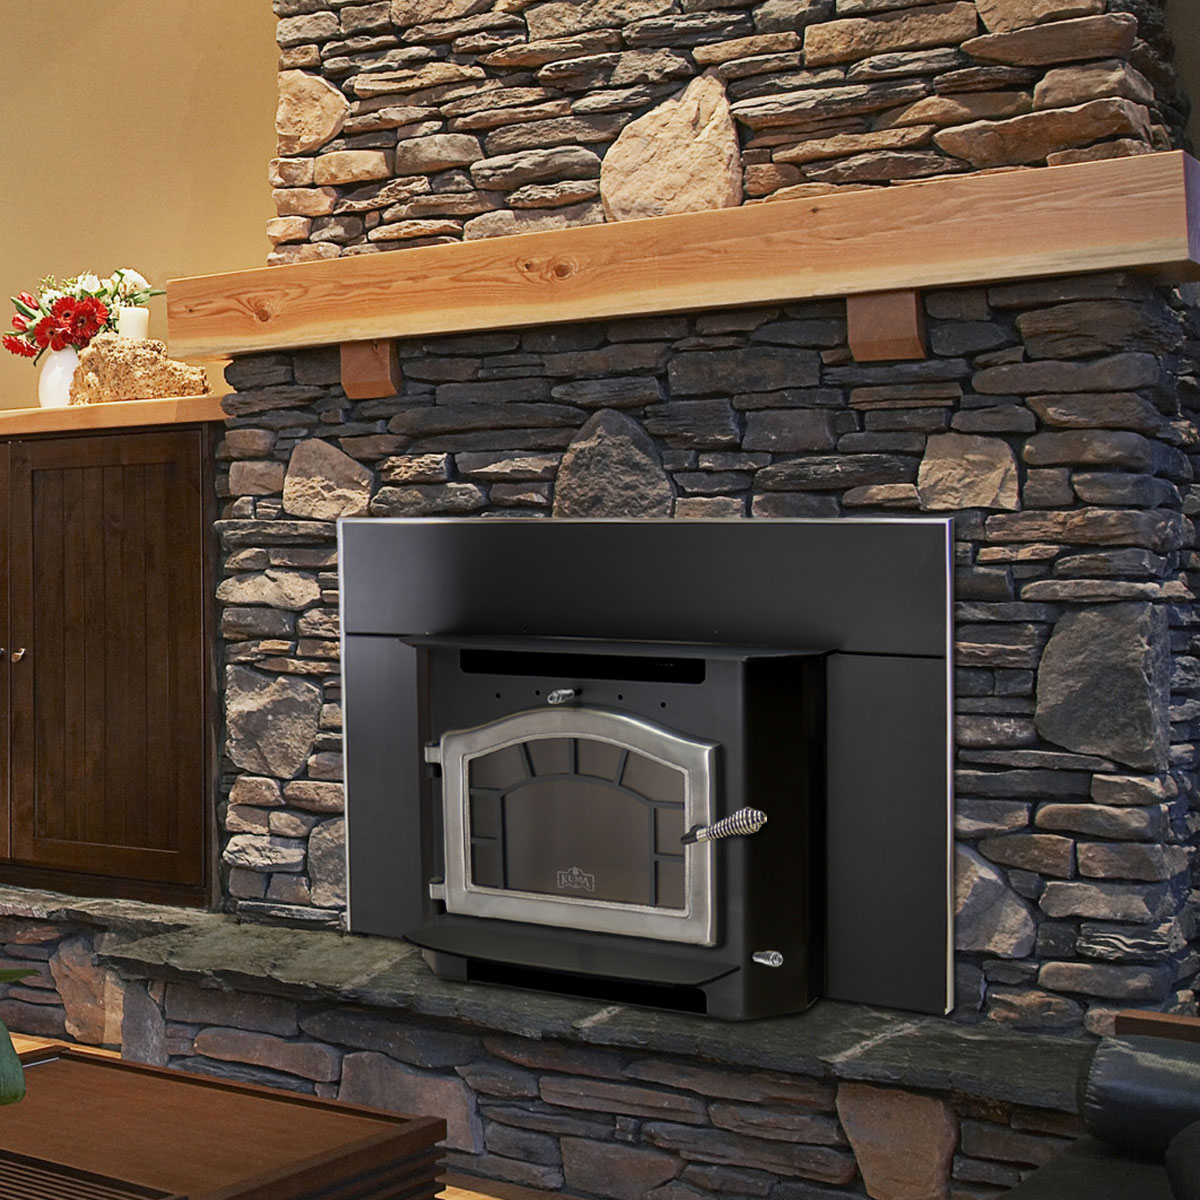 Kuma Sequoia wood fireplace insert, made in the USA - Sequoia Fireplace Insert, Wood Stove Insert By Kuma Stoves